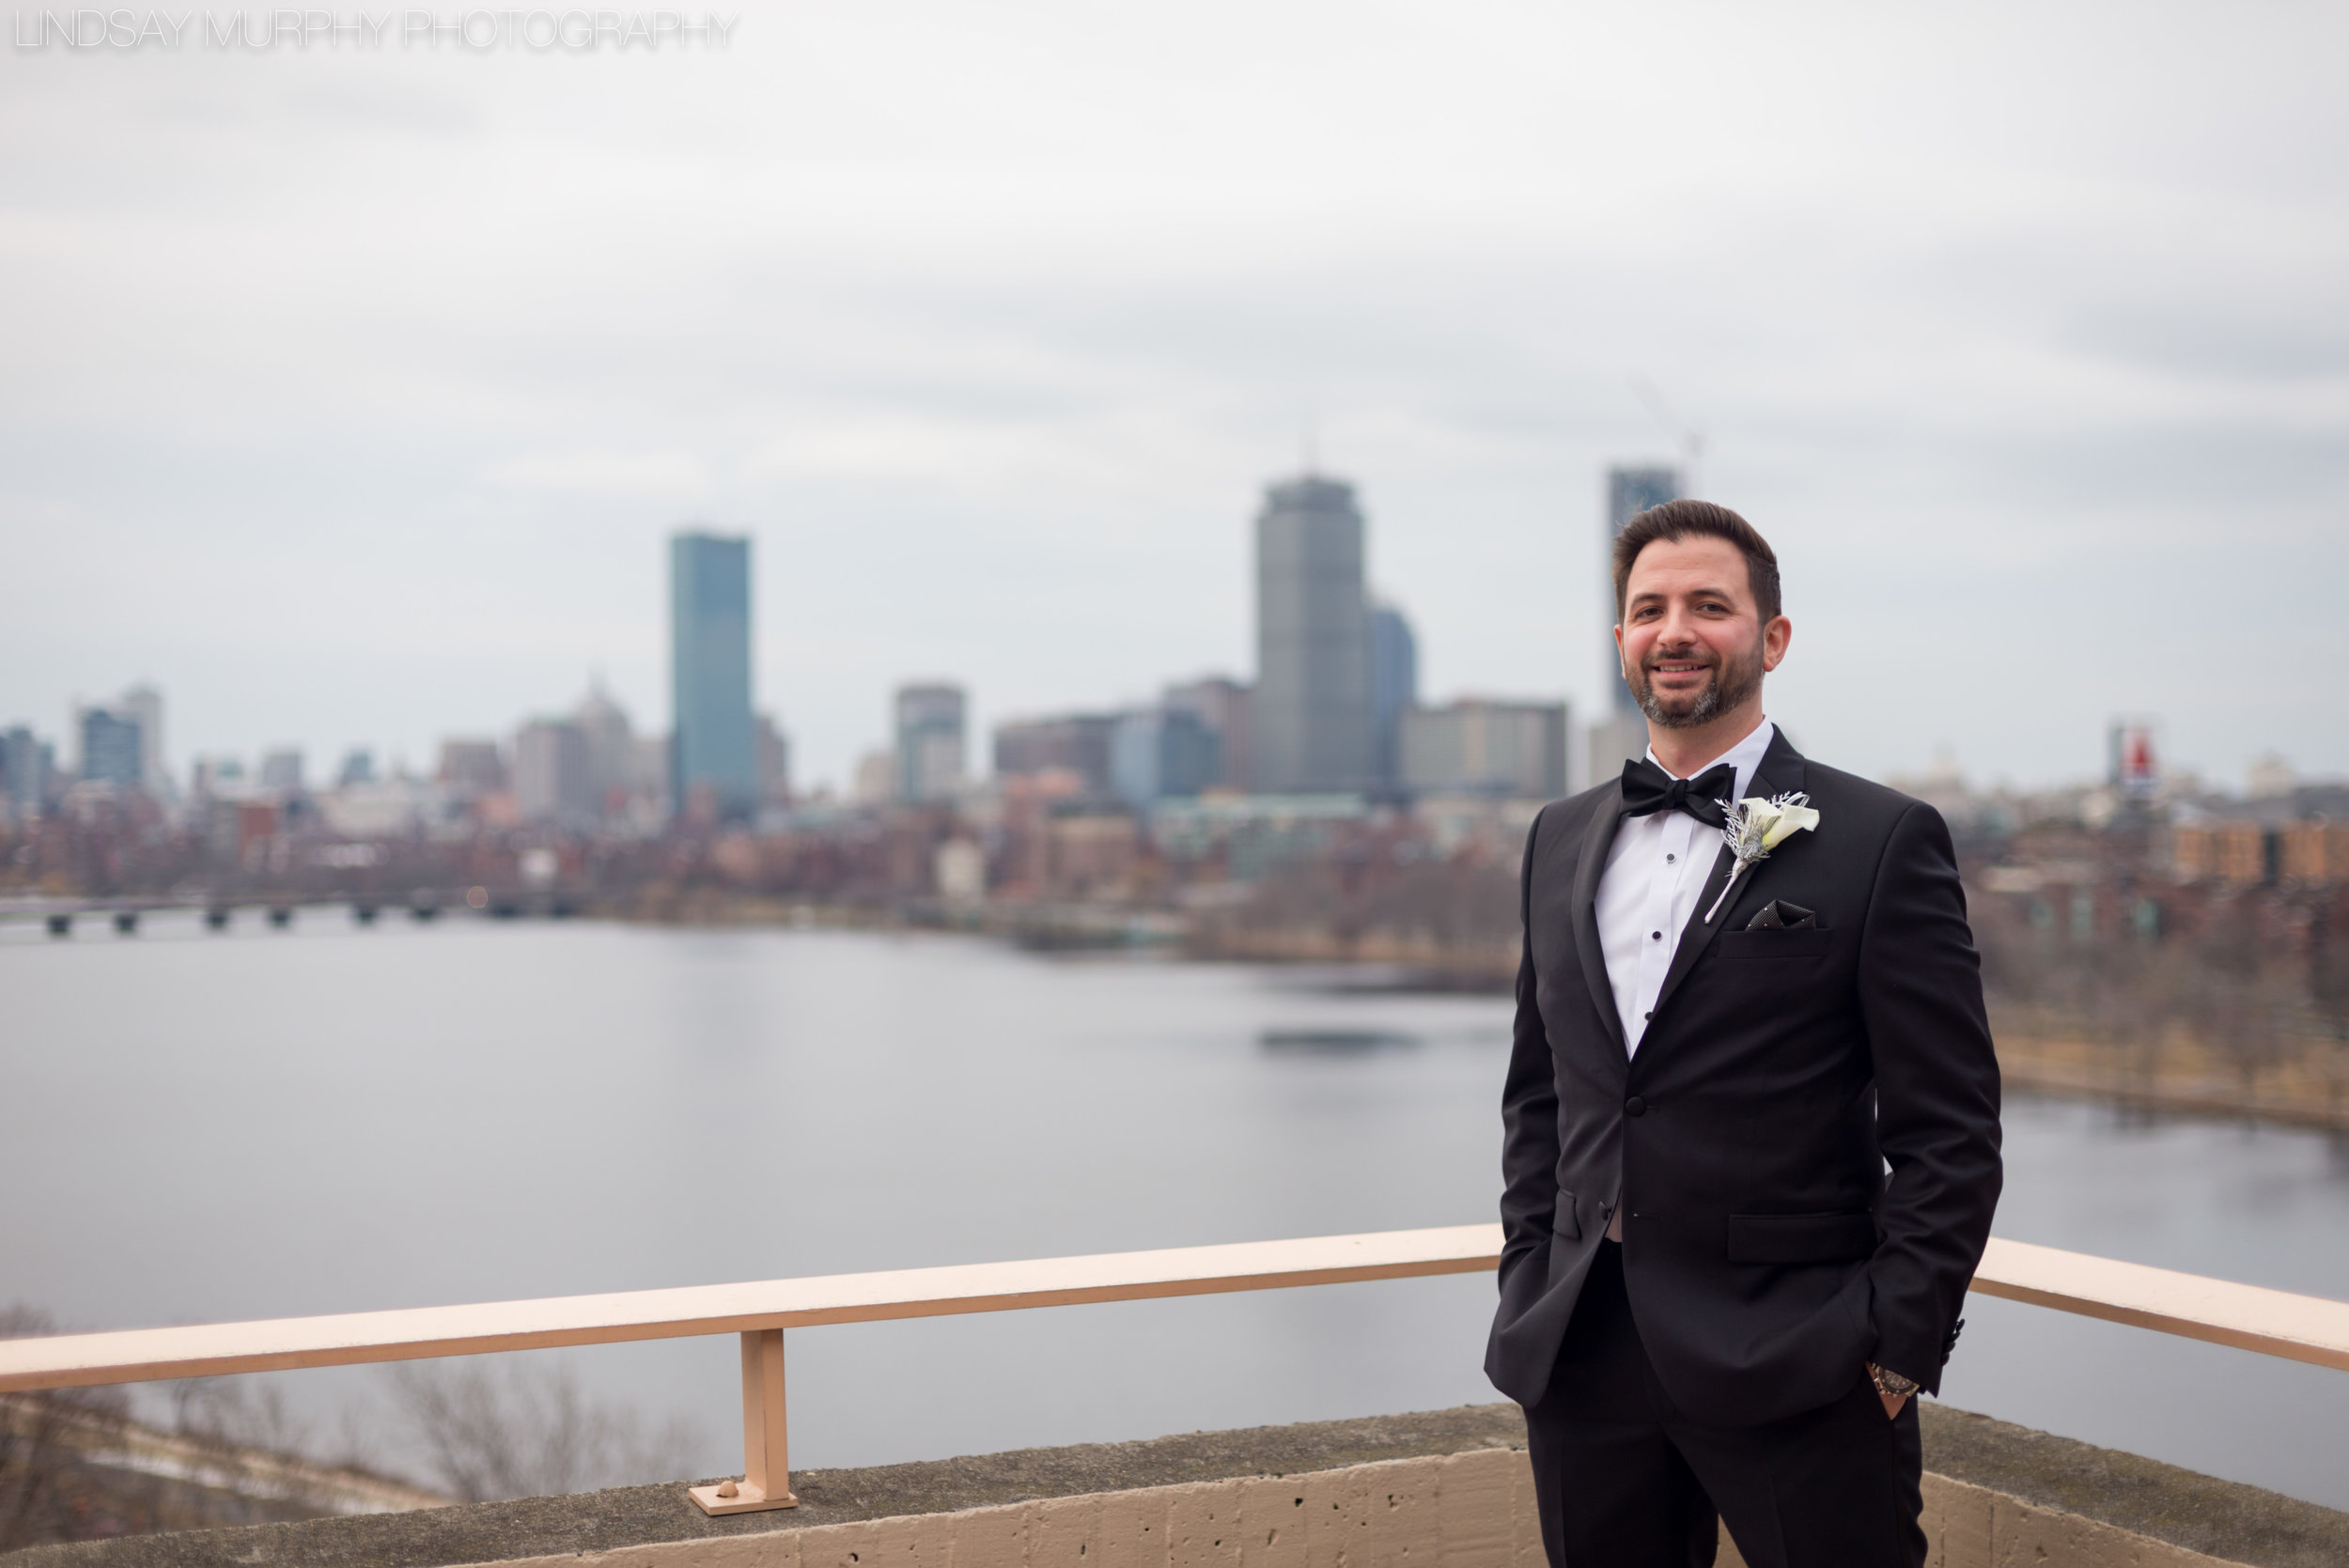 boston_wedding_photographer-106.jpg